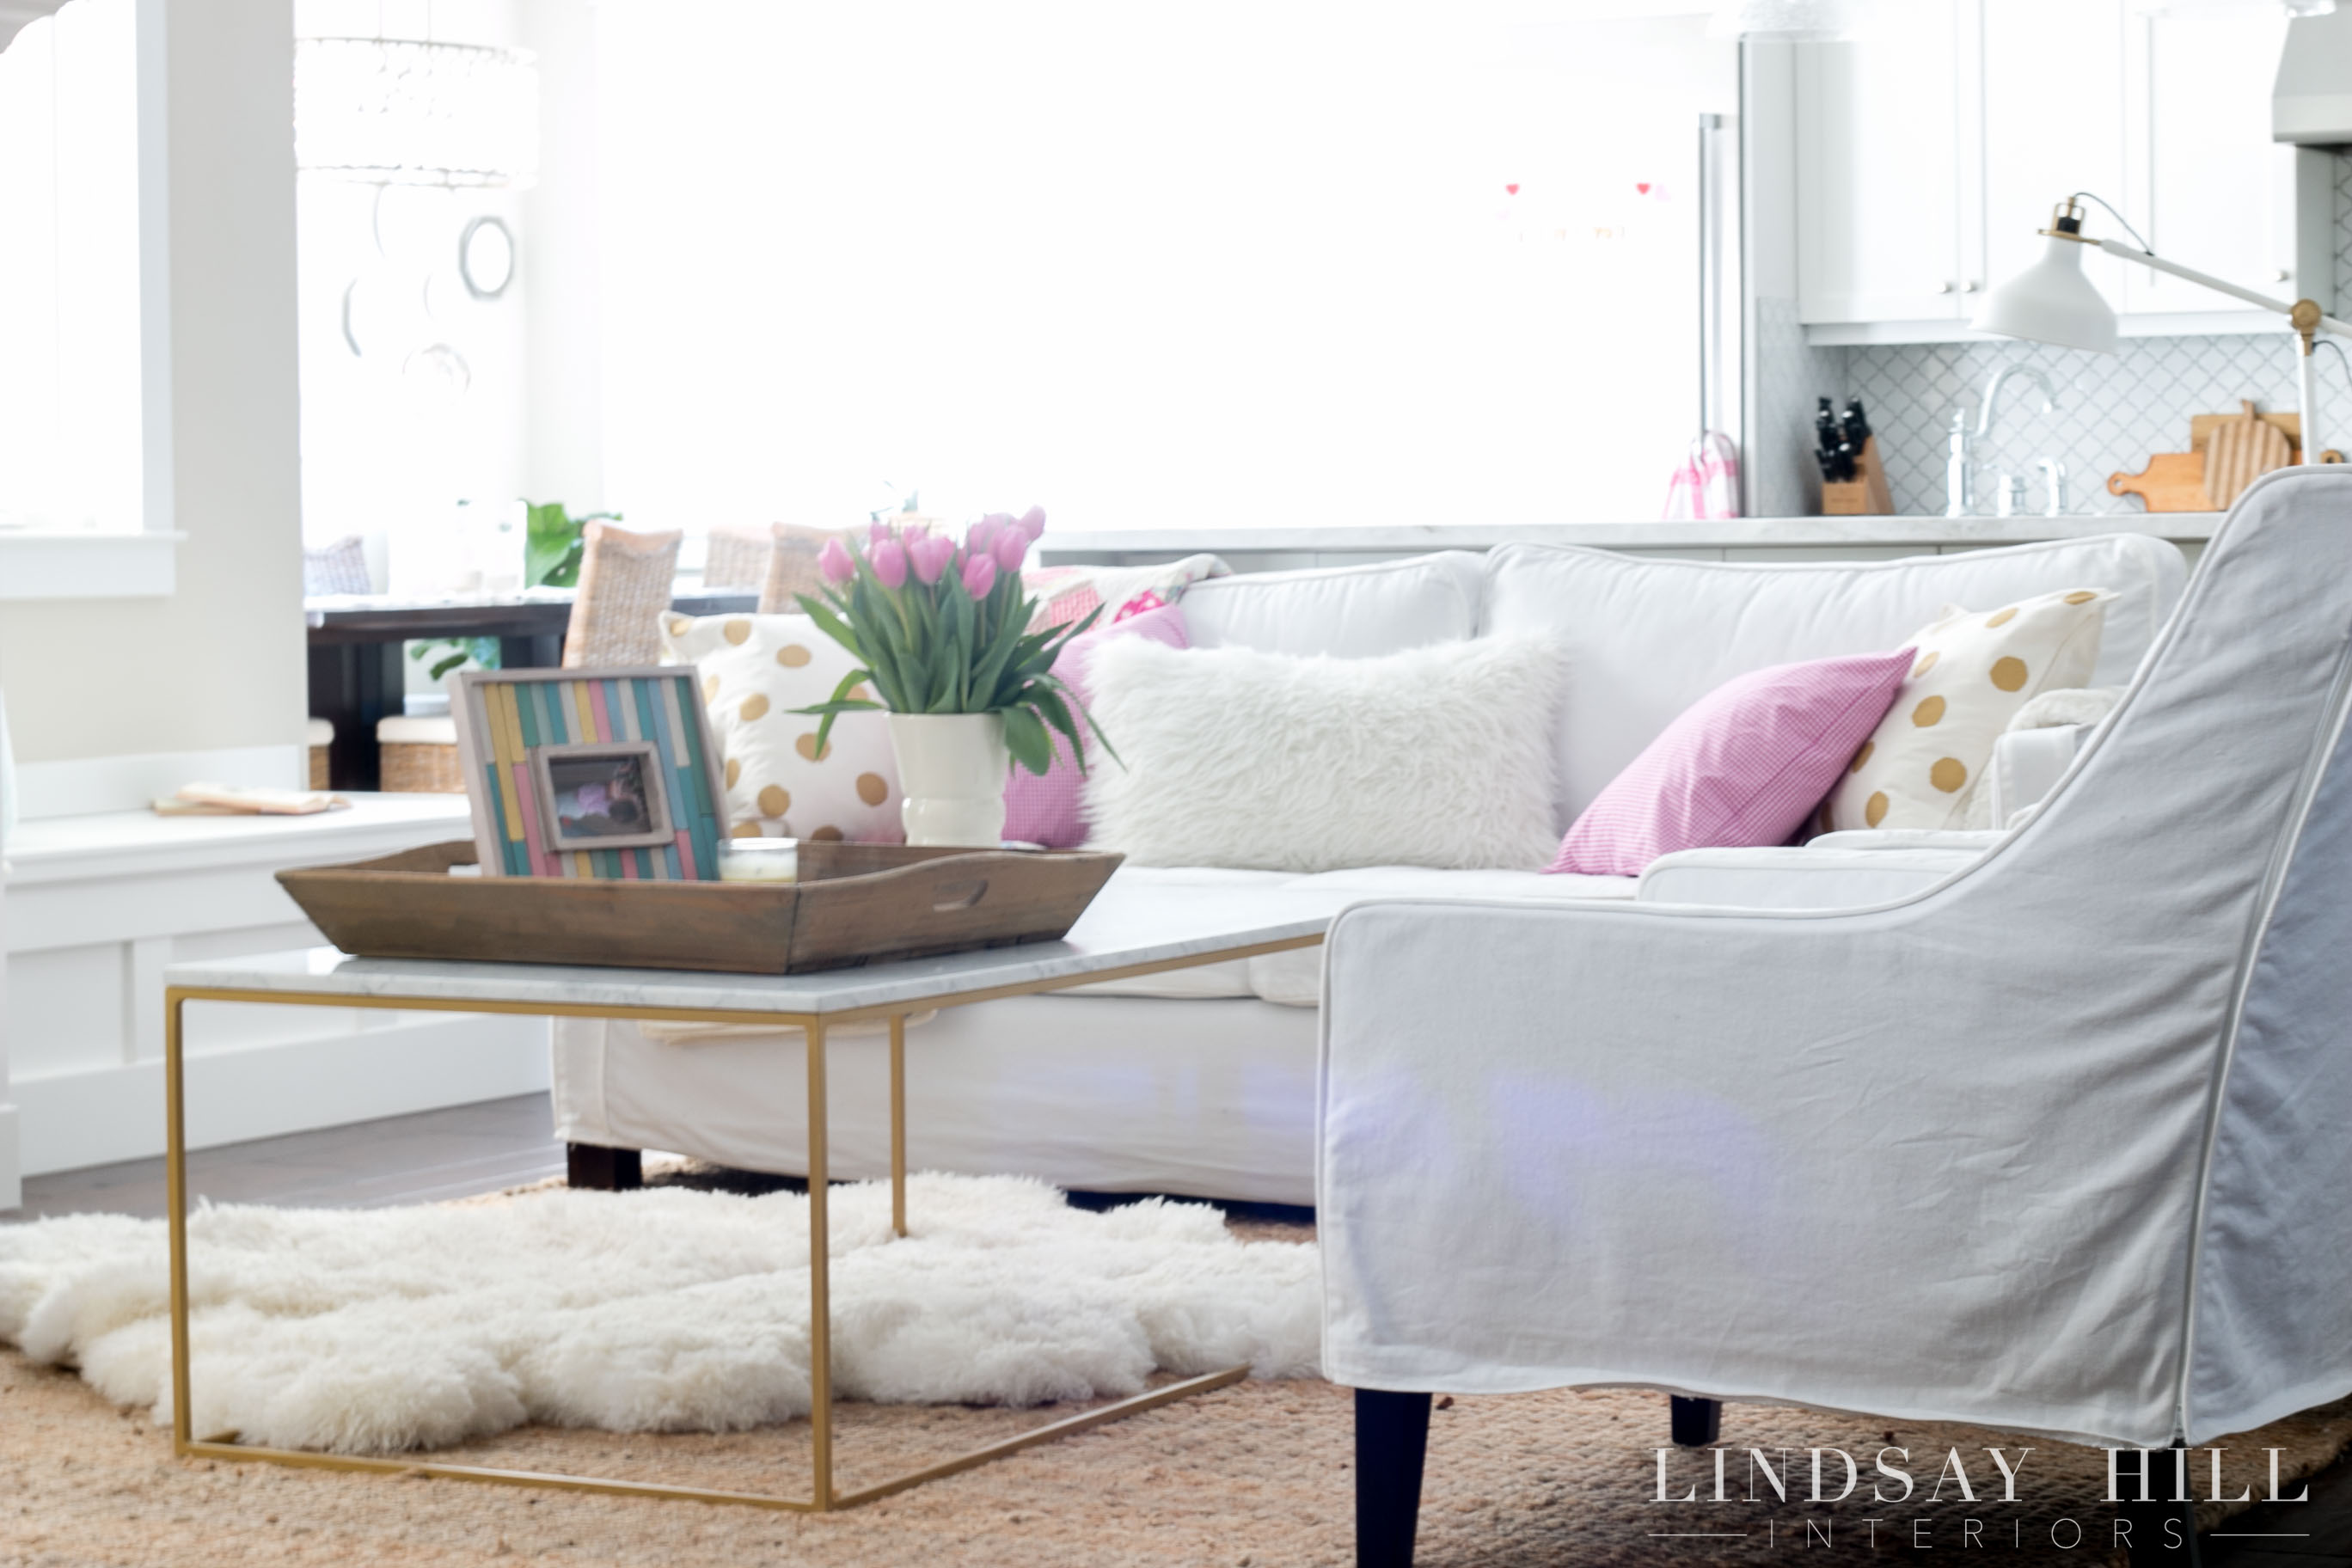 lindsay hill interiors simple valentine's day decor living room